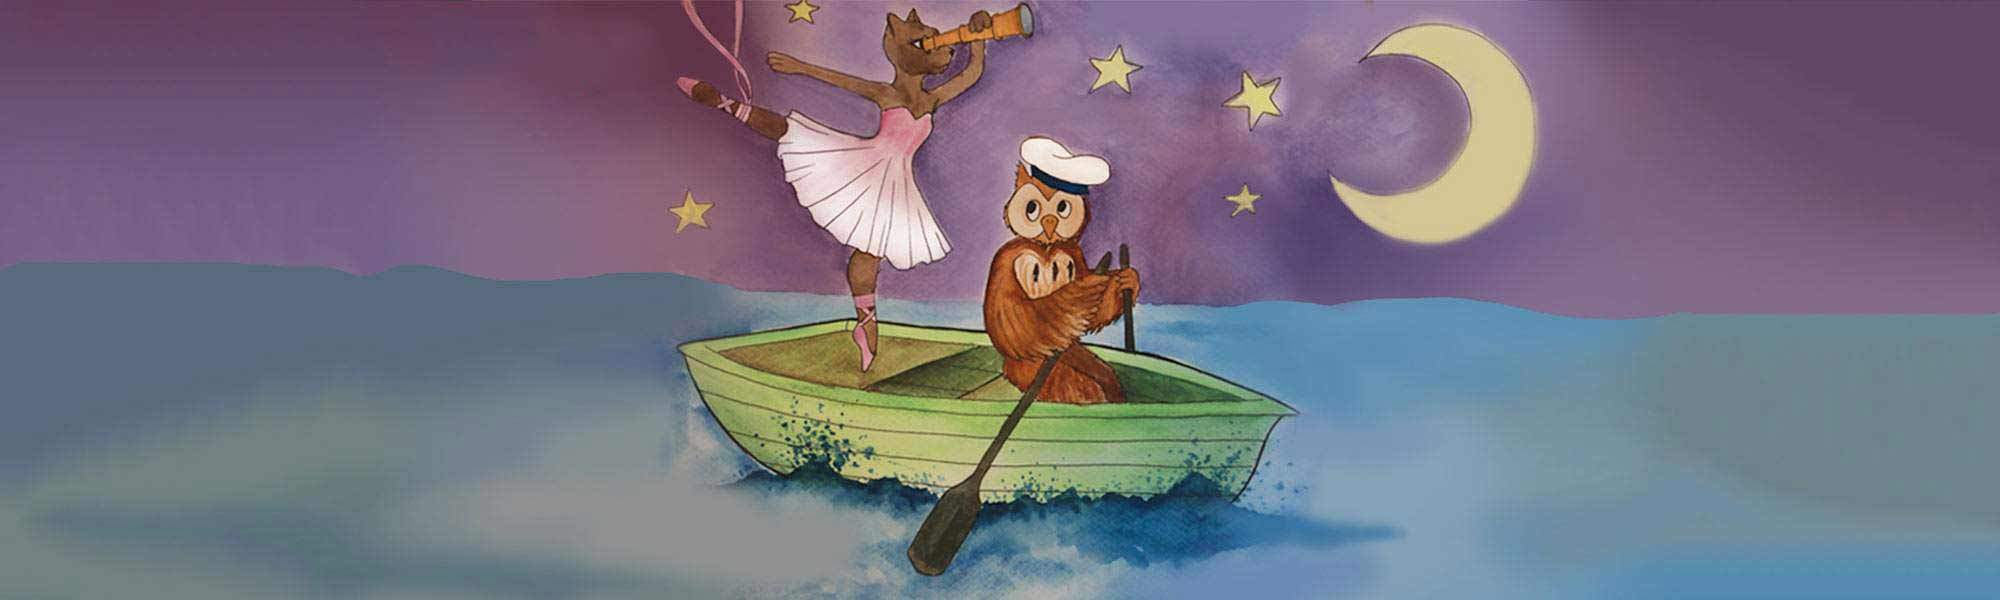 Little Bird EarlyBird Tickets! The Owl & the Pussycat at Lilian Baylis Studio, Sadler's Wells - A Beautiful Ballet for Ages 2 - 11 year Olds, 35% off